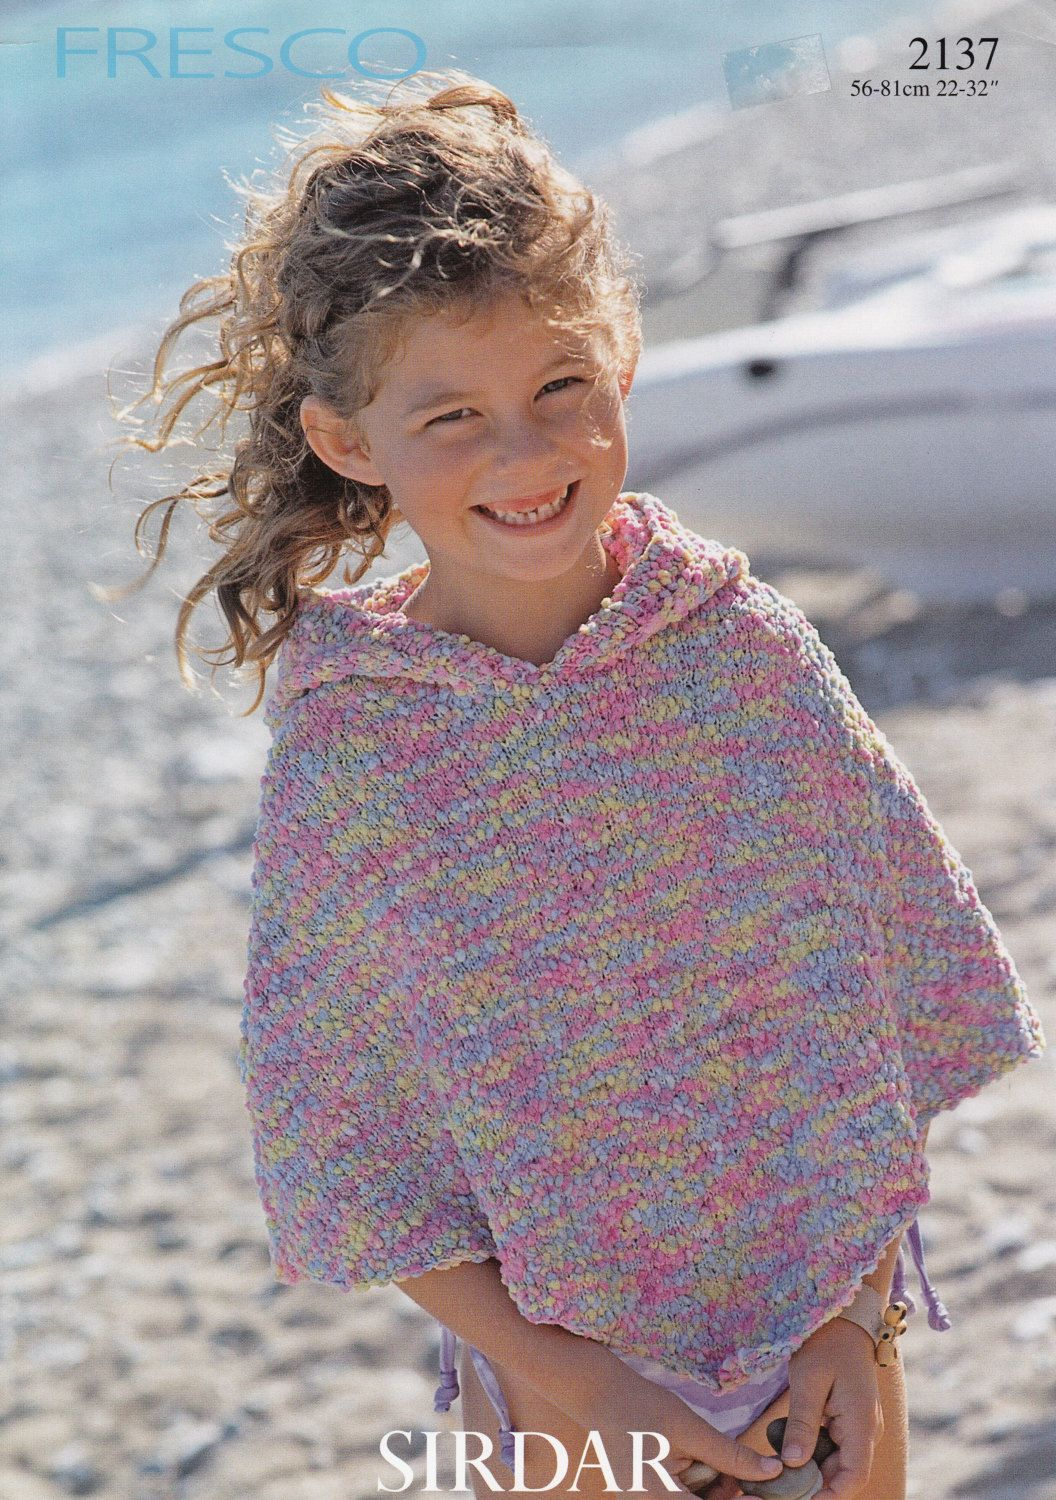 Girls Poncho w/Hood Knitting Pattern - Sirdar Fresco Poncho Knitting ...